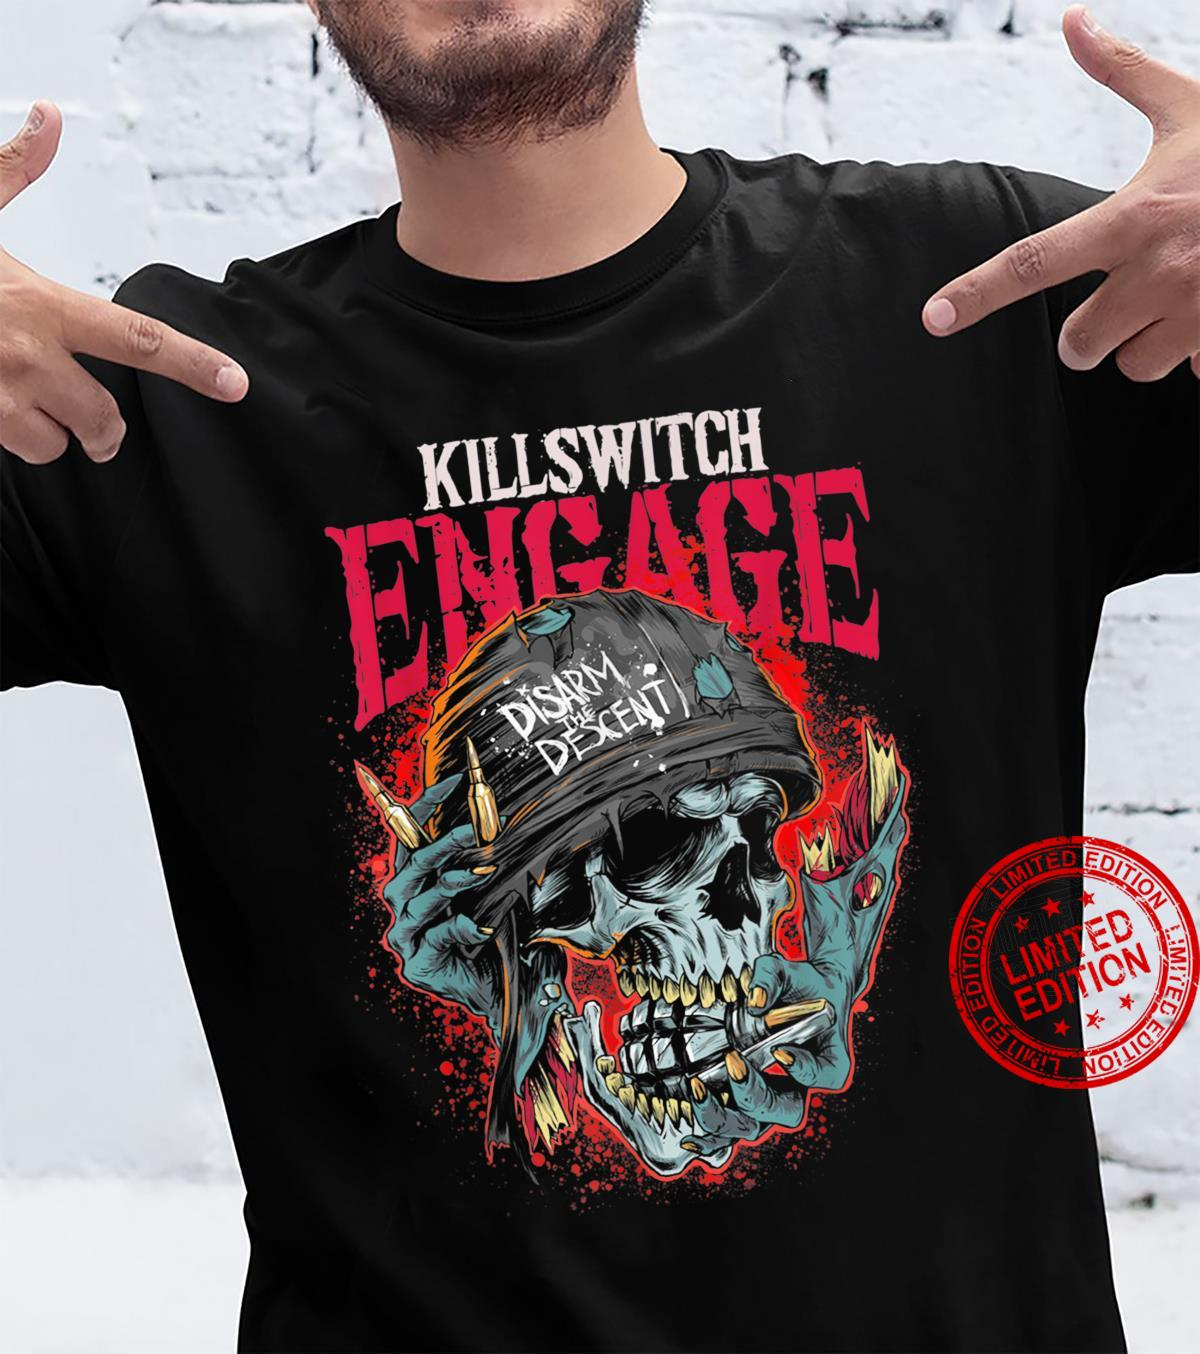 Killswitchs Engages Shirt